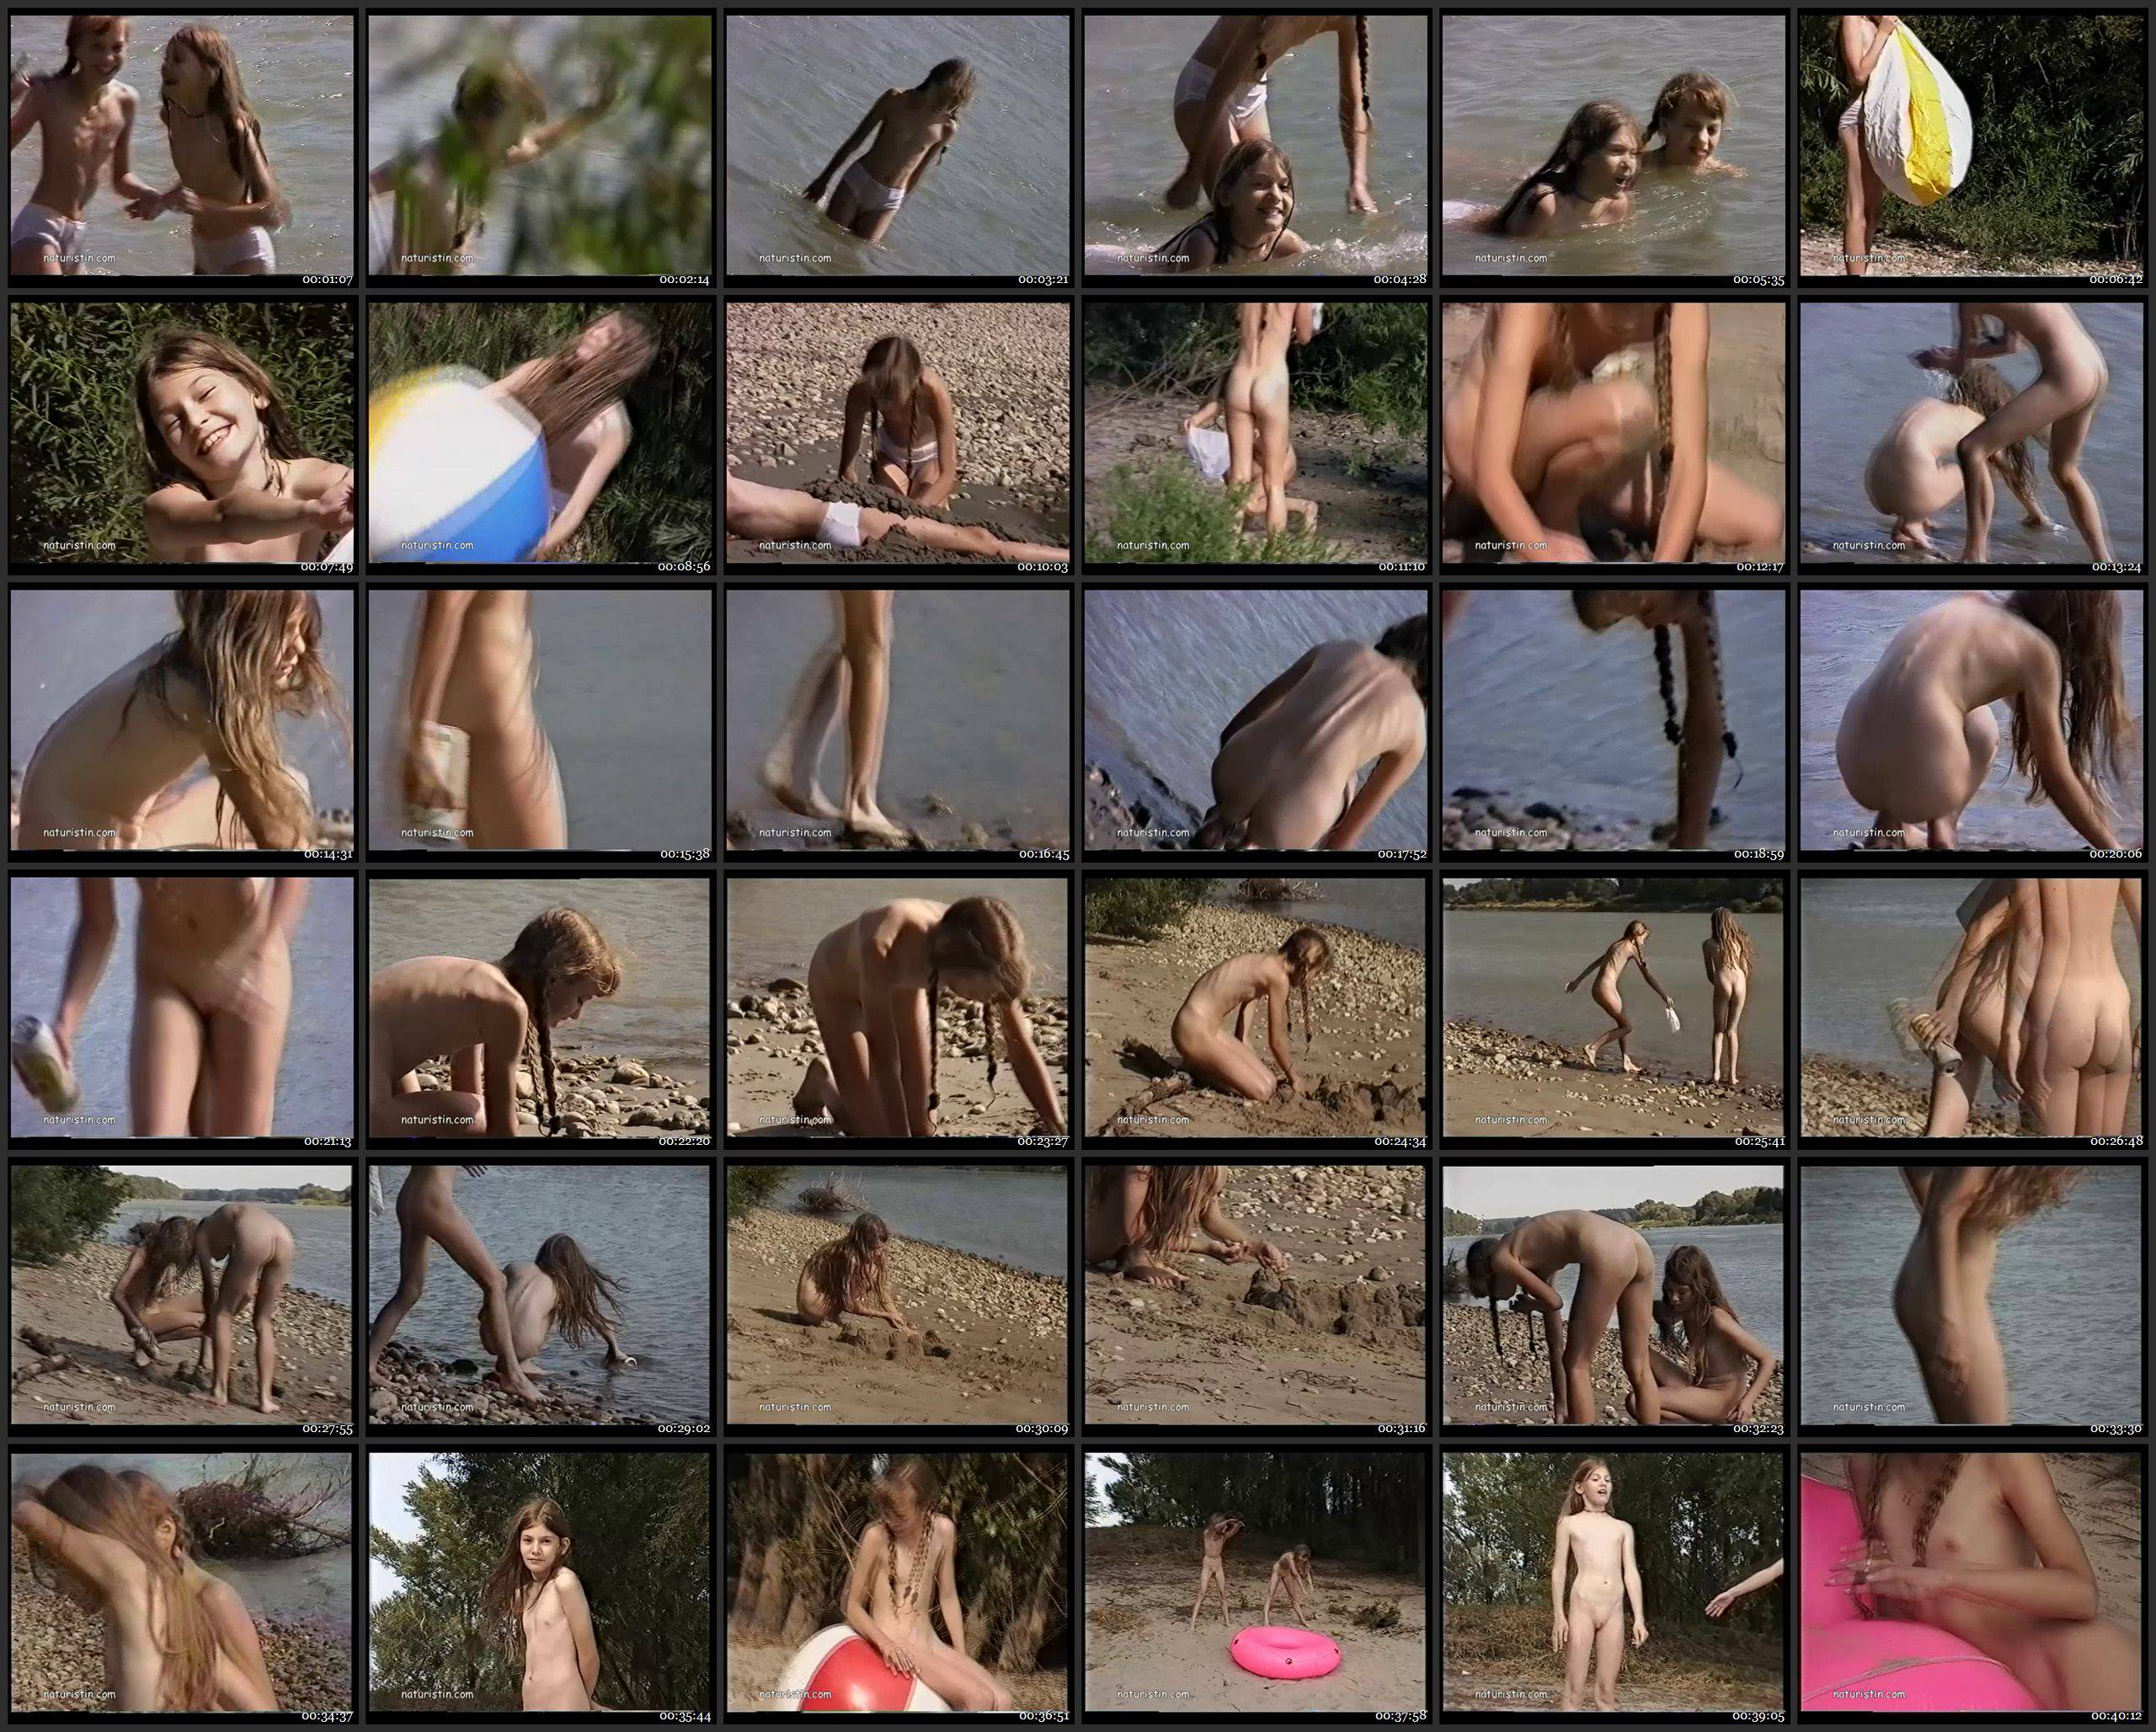 Julia and Valerie - Thumbnails